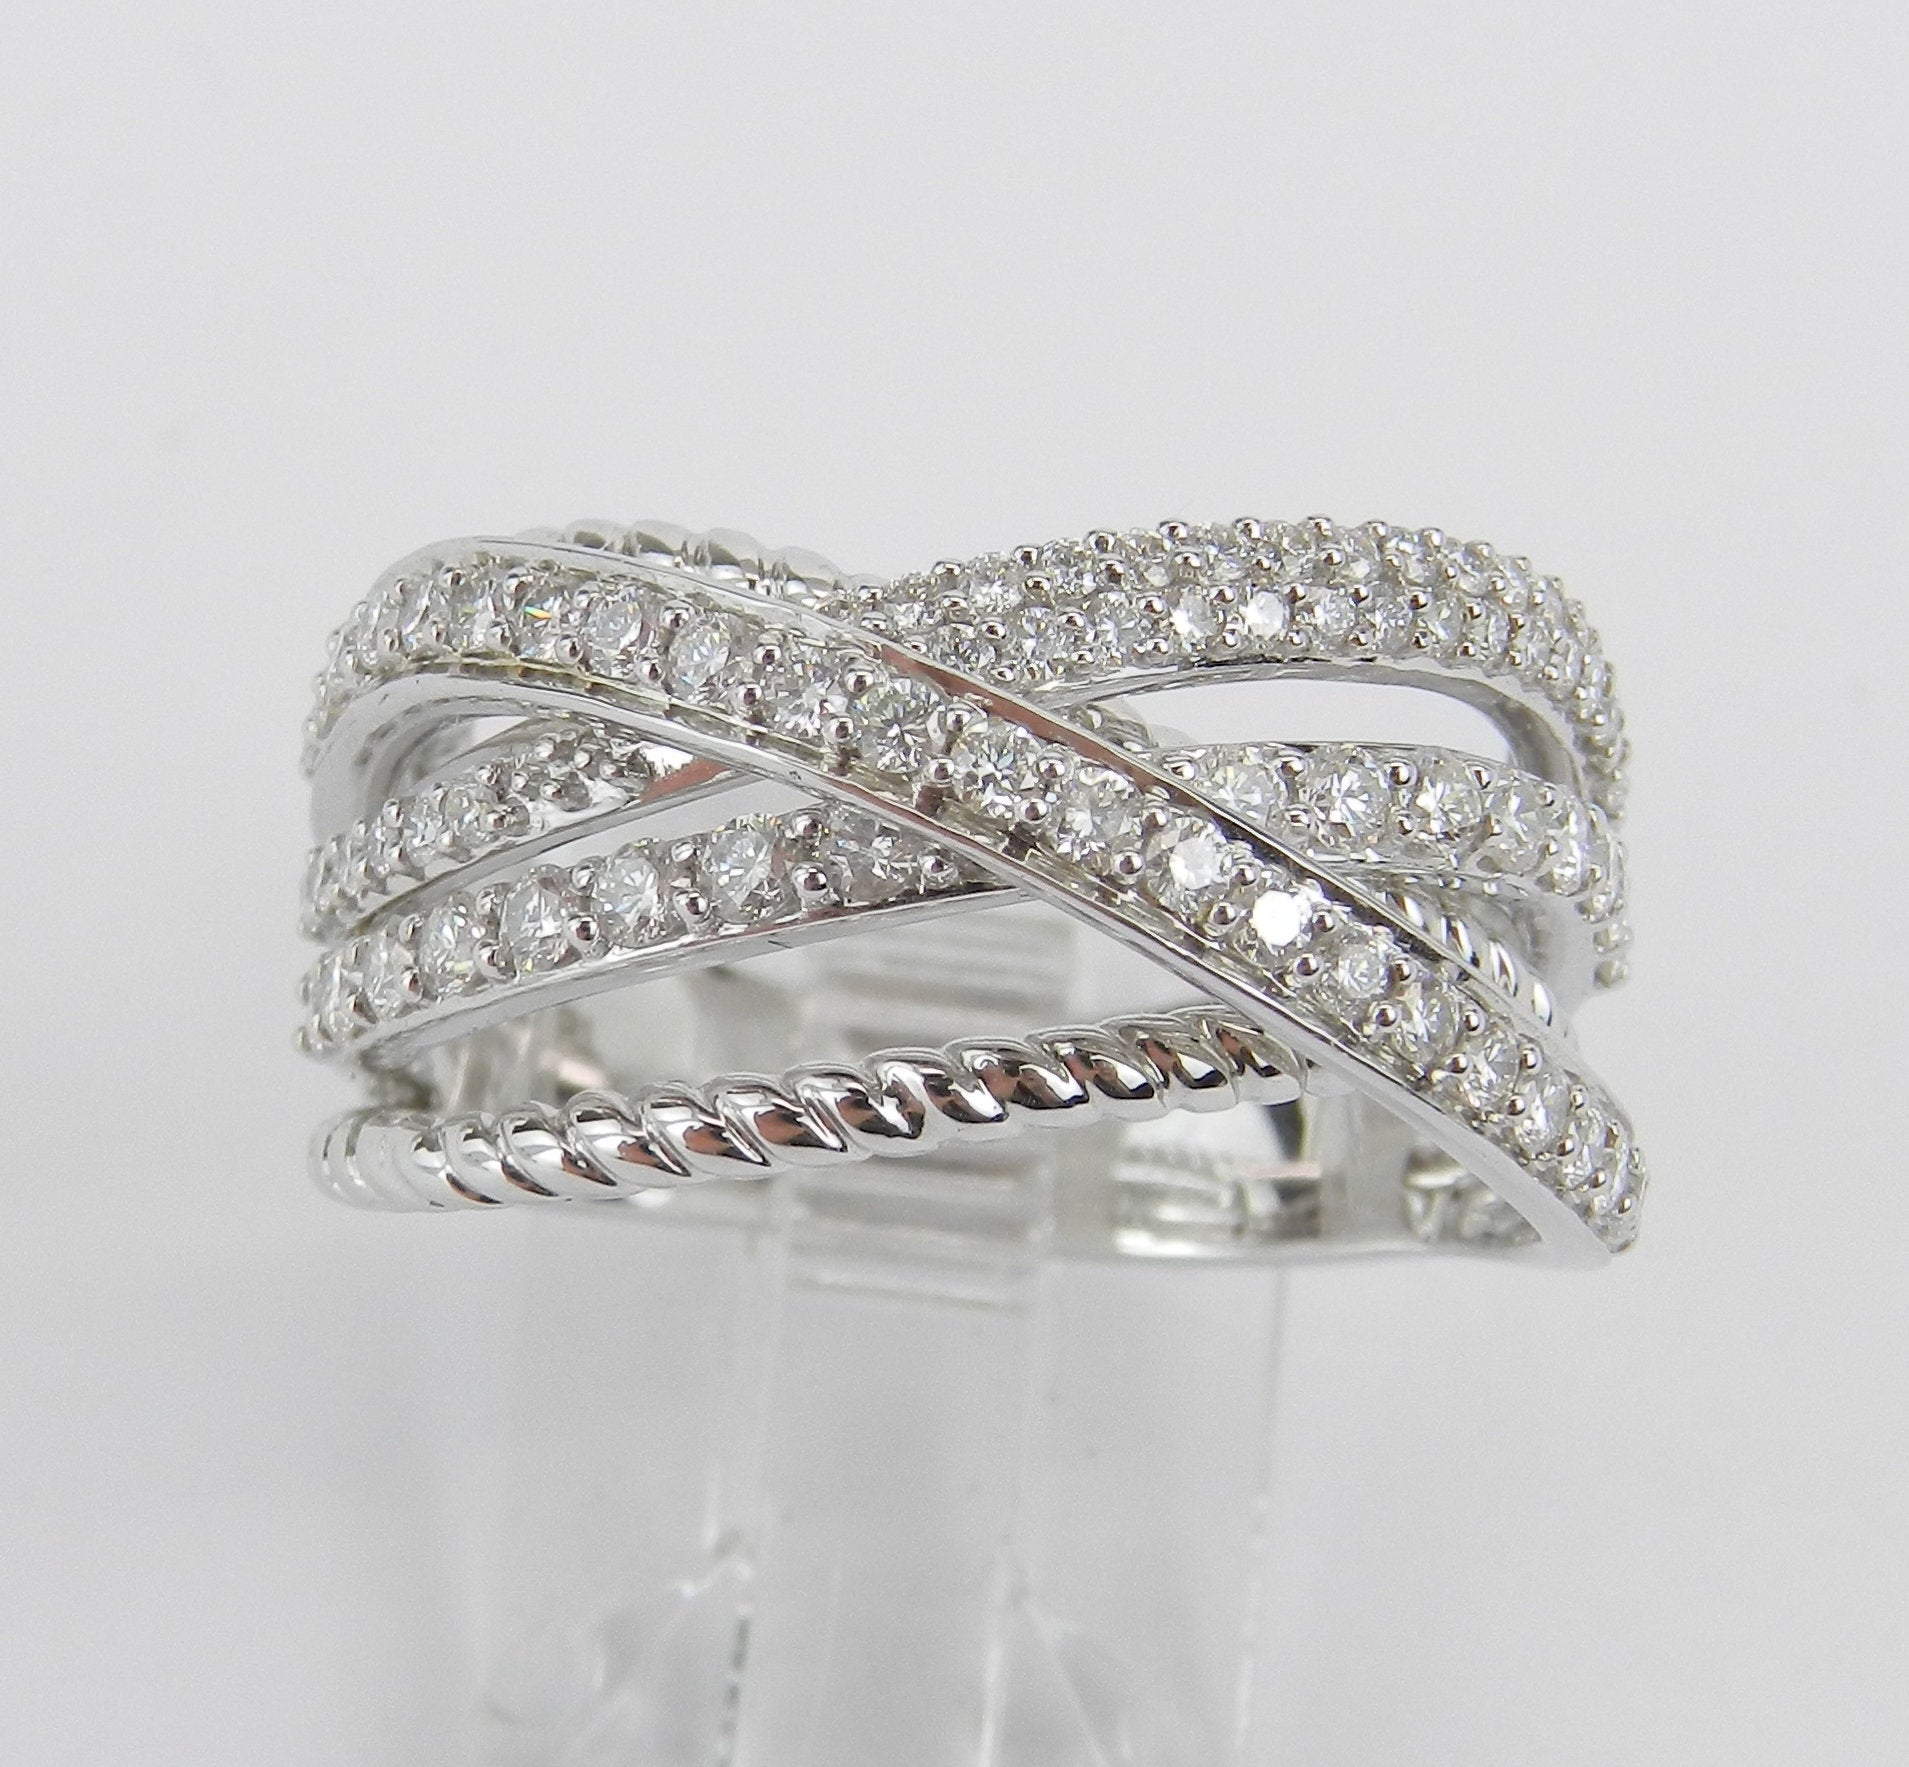 Diamond Crossover Ring, Anniversary Ring, 14K White Gold Throughout Most Up To Date Diamond Multi Row Anniversary Rings In White Gold (View 12 of 25)